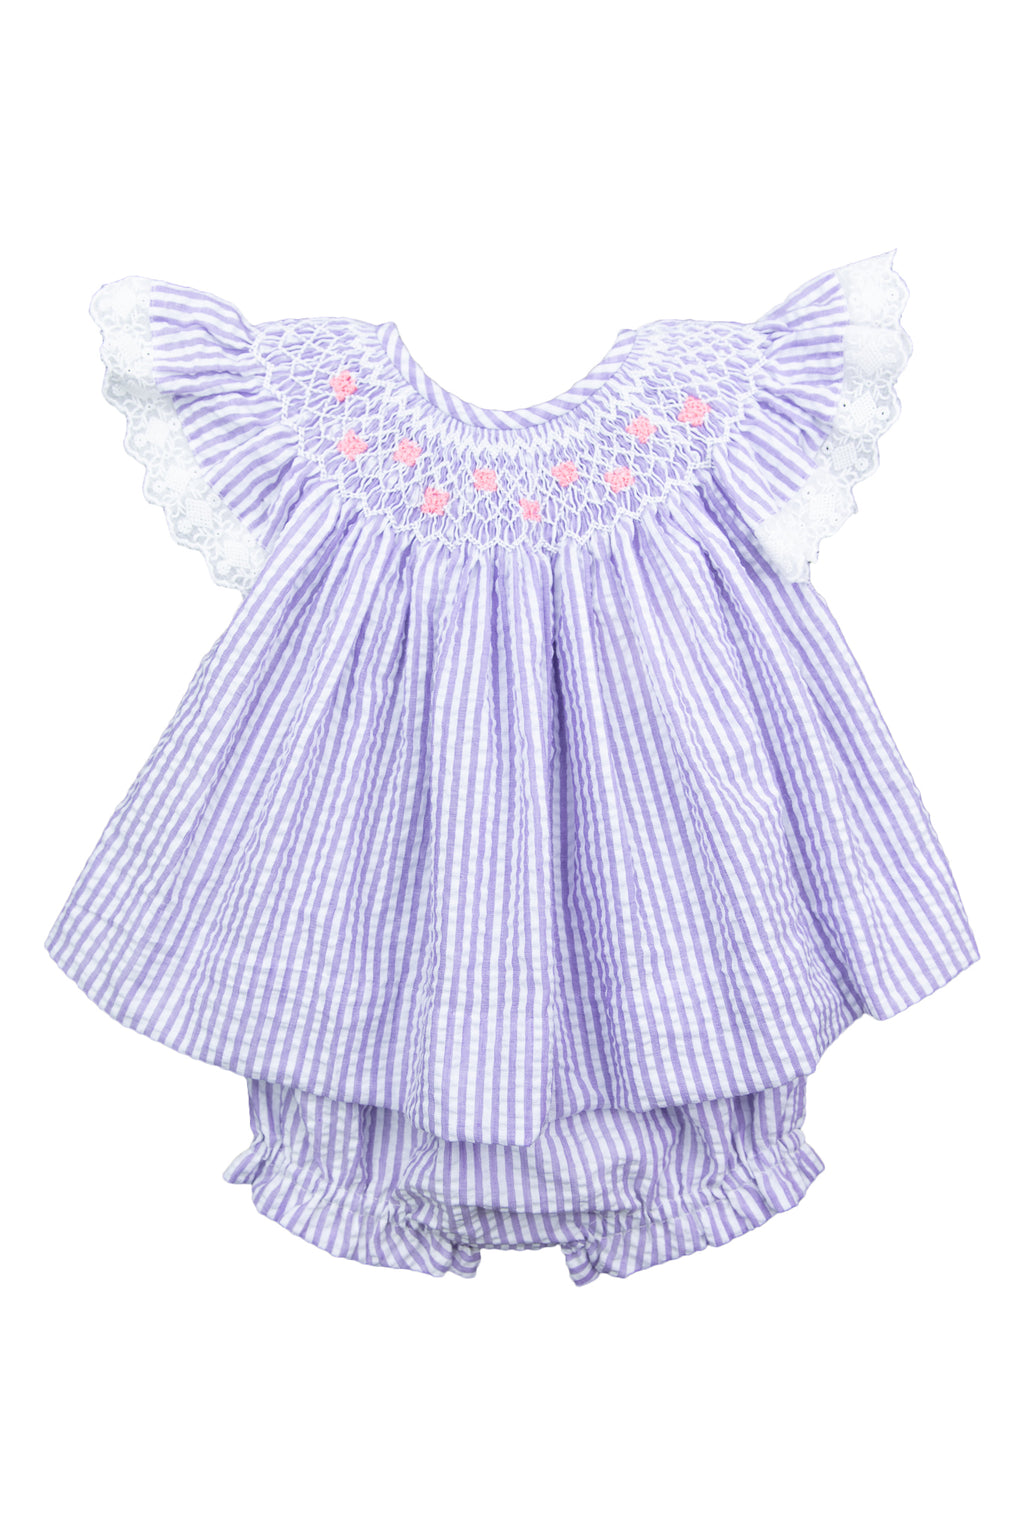 Girls Smocked Butterflies Bloomer Set